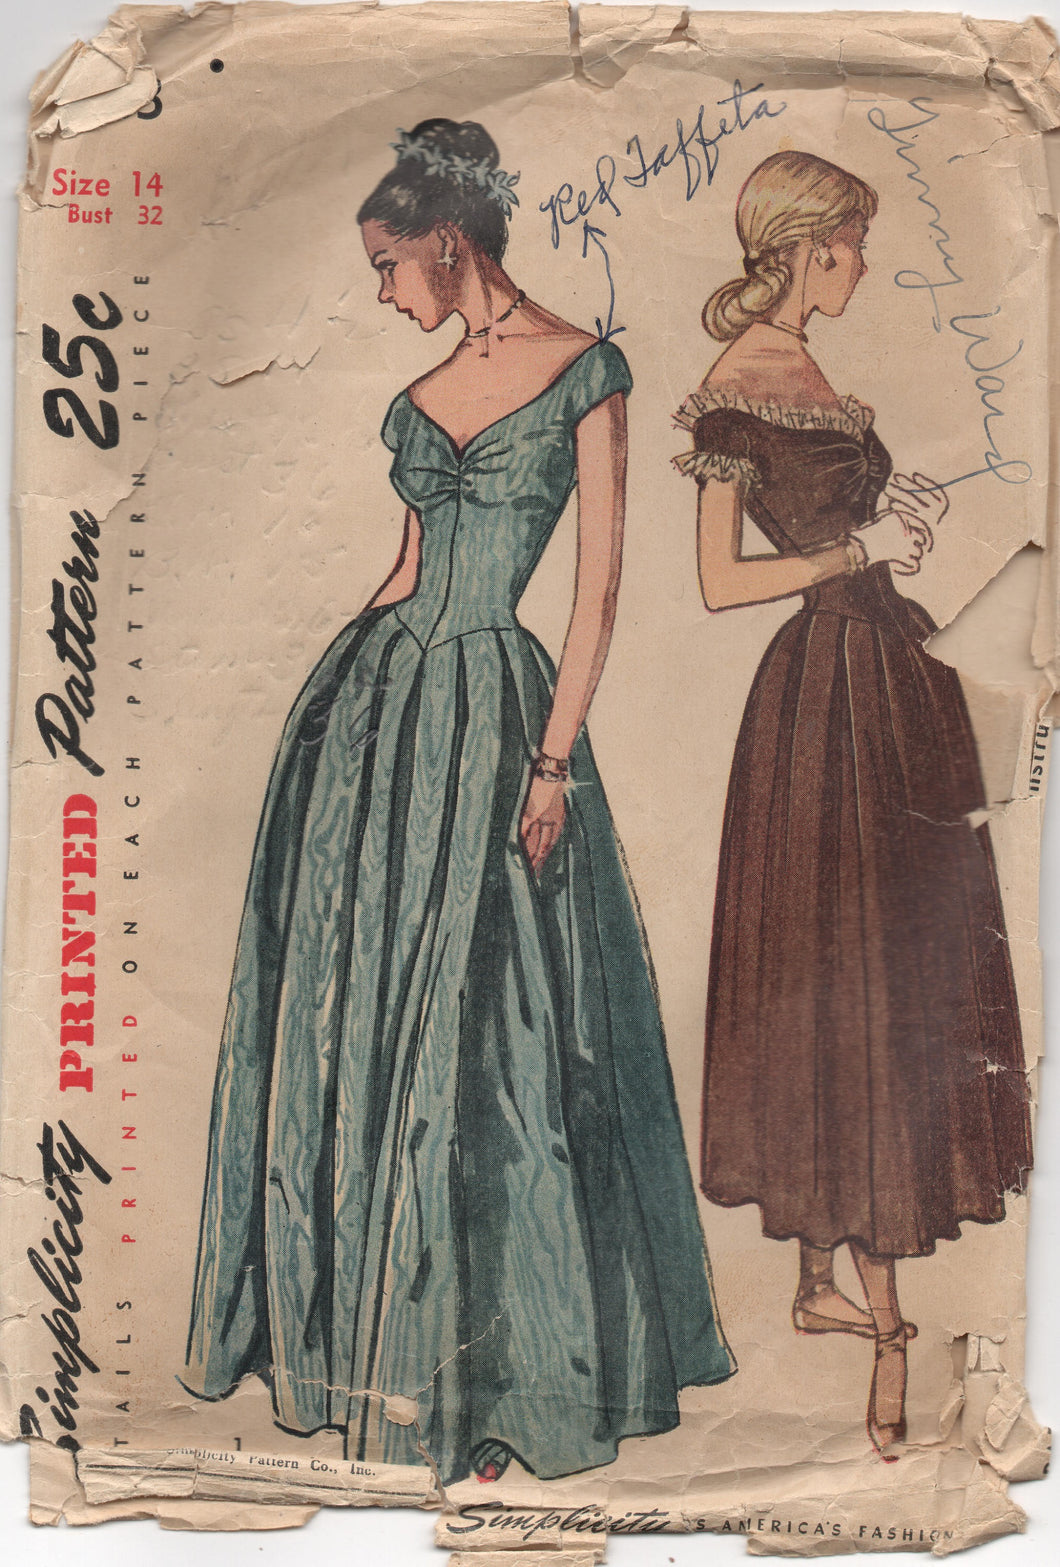 1940's Simplicity Evening Gown with Sweetheart Neckline and V Drop Waist Pattern - Bust 32